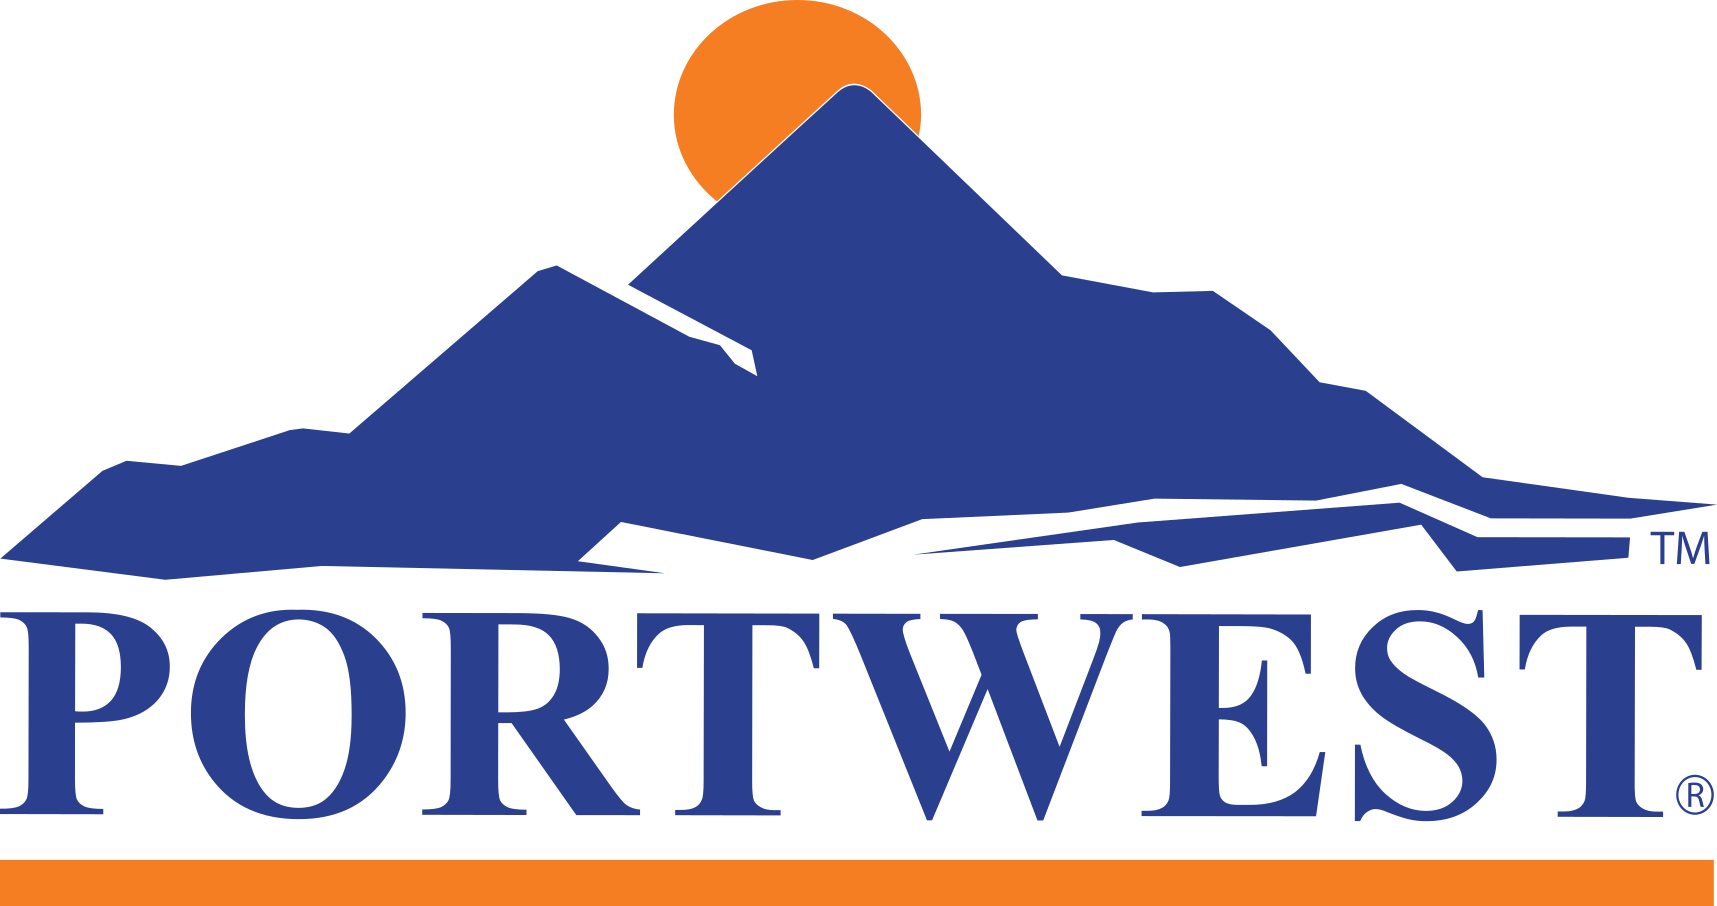 Portwest Ltd.